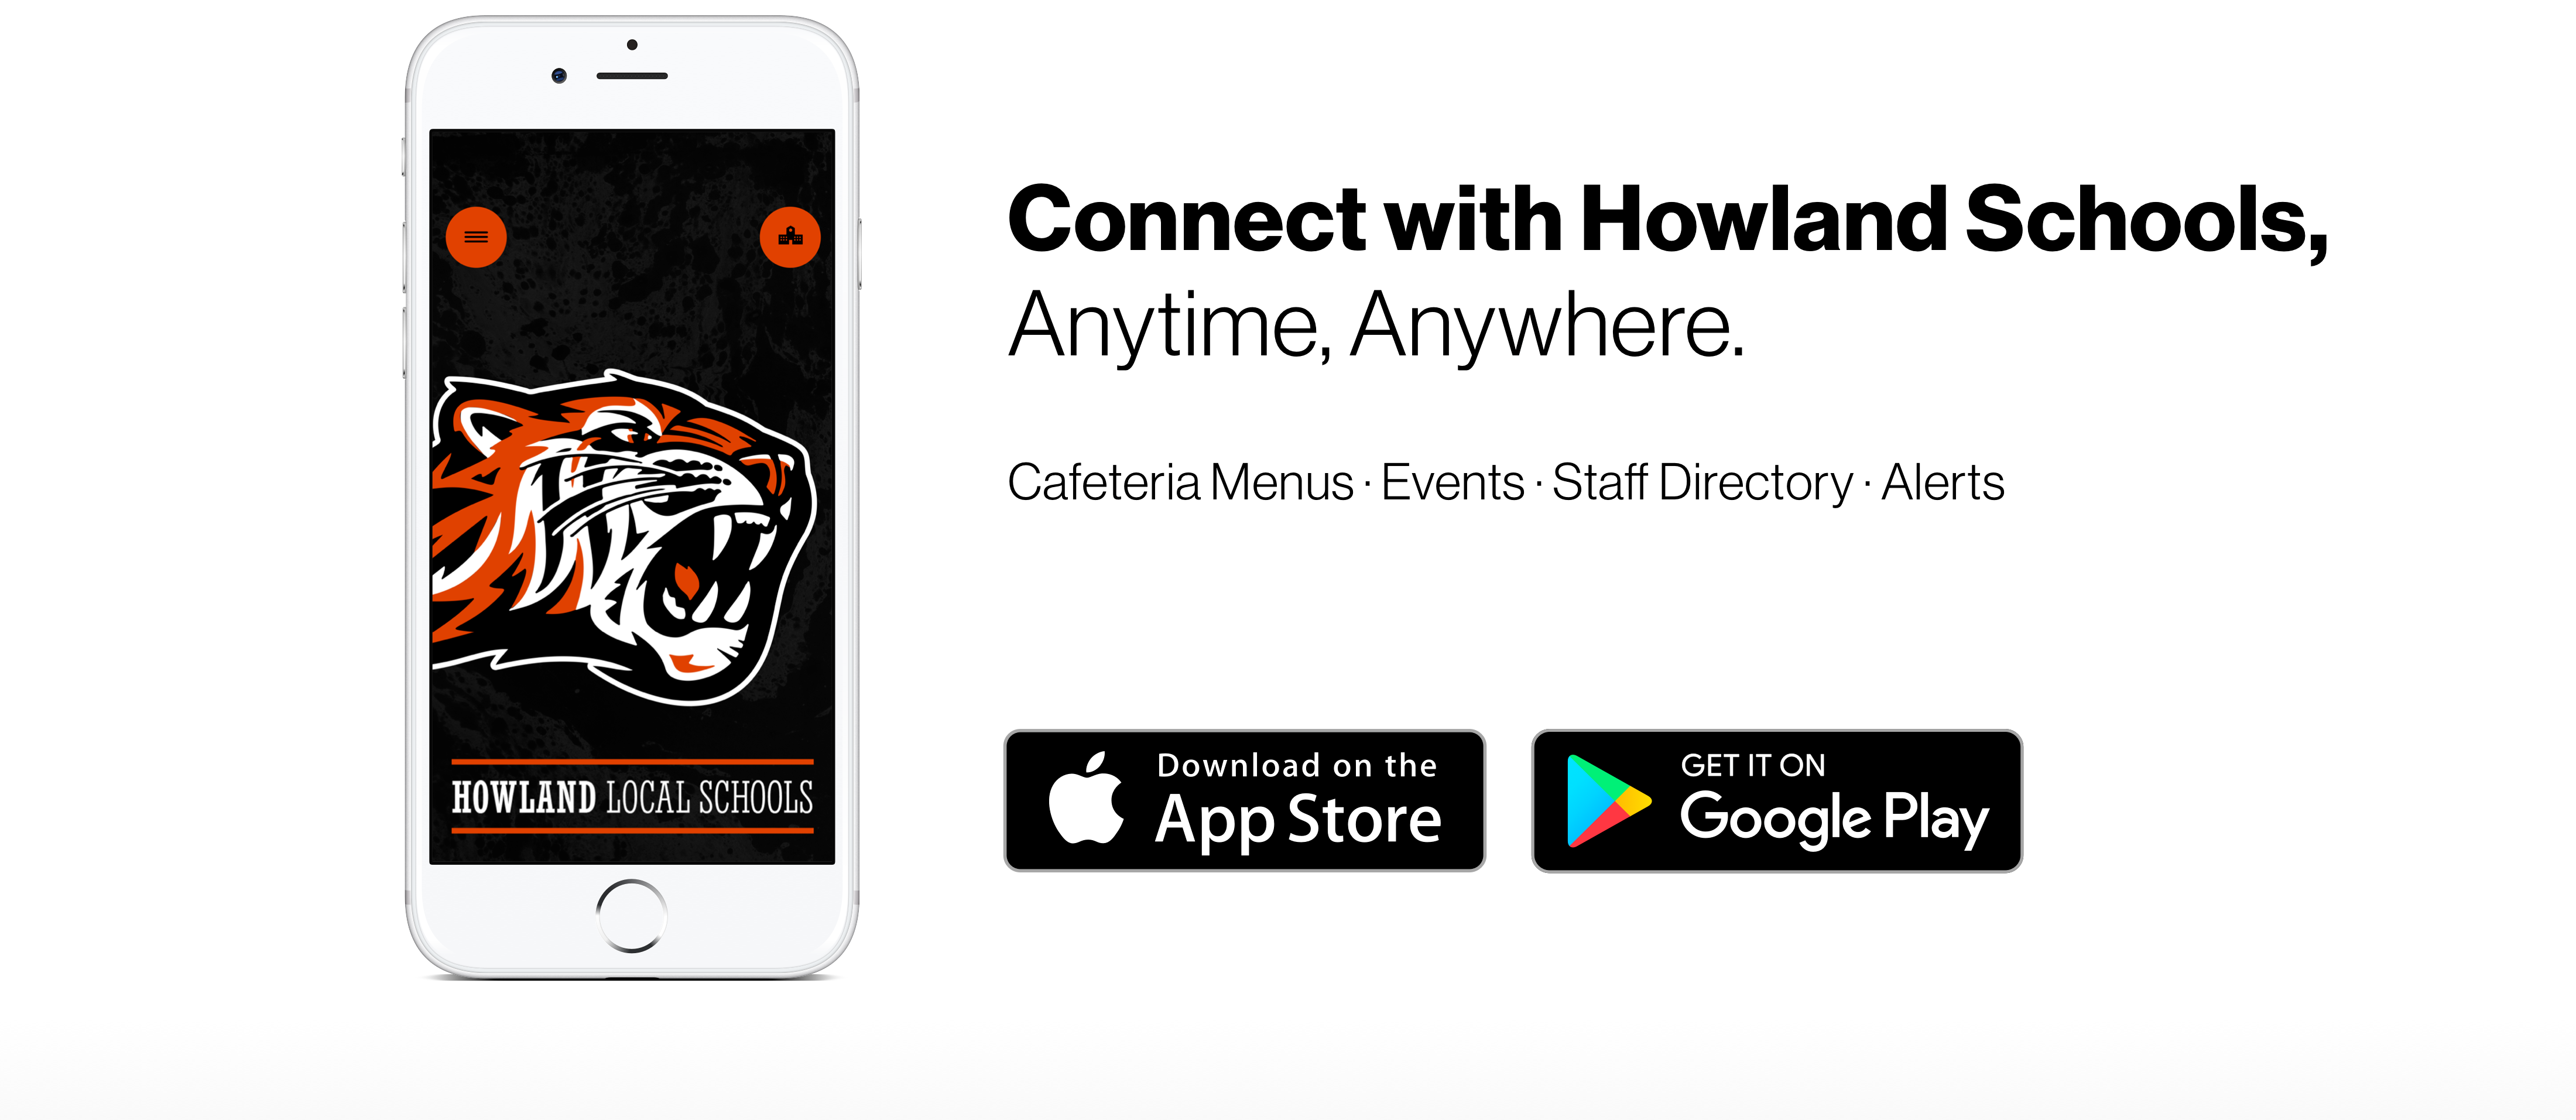 Connect with Howland